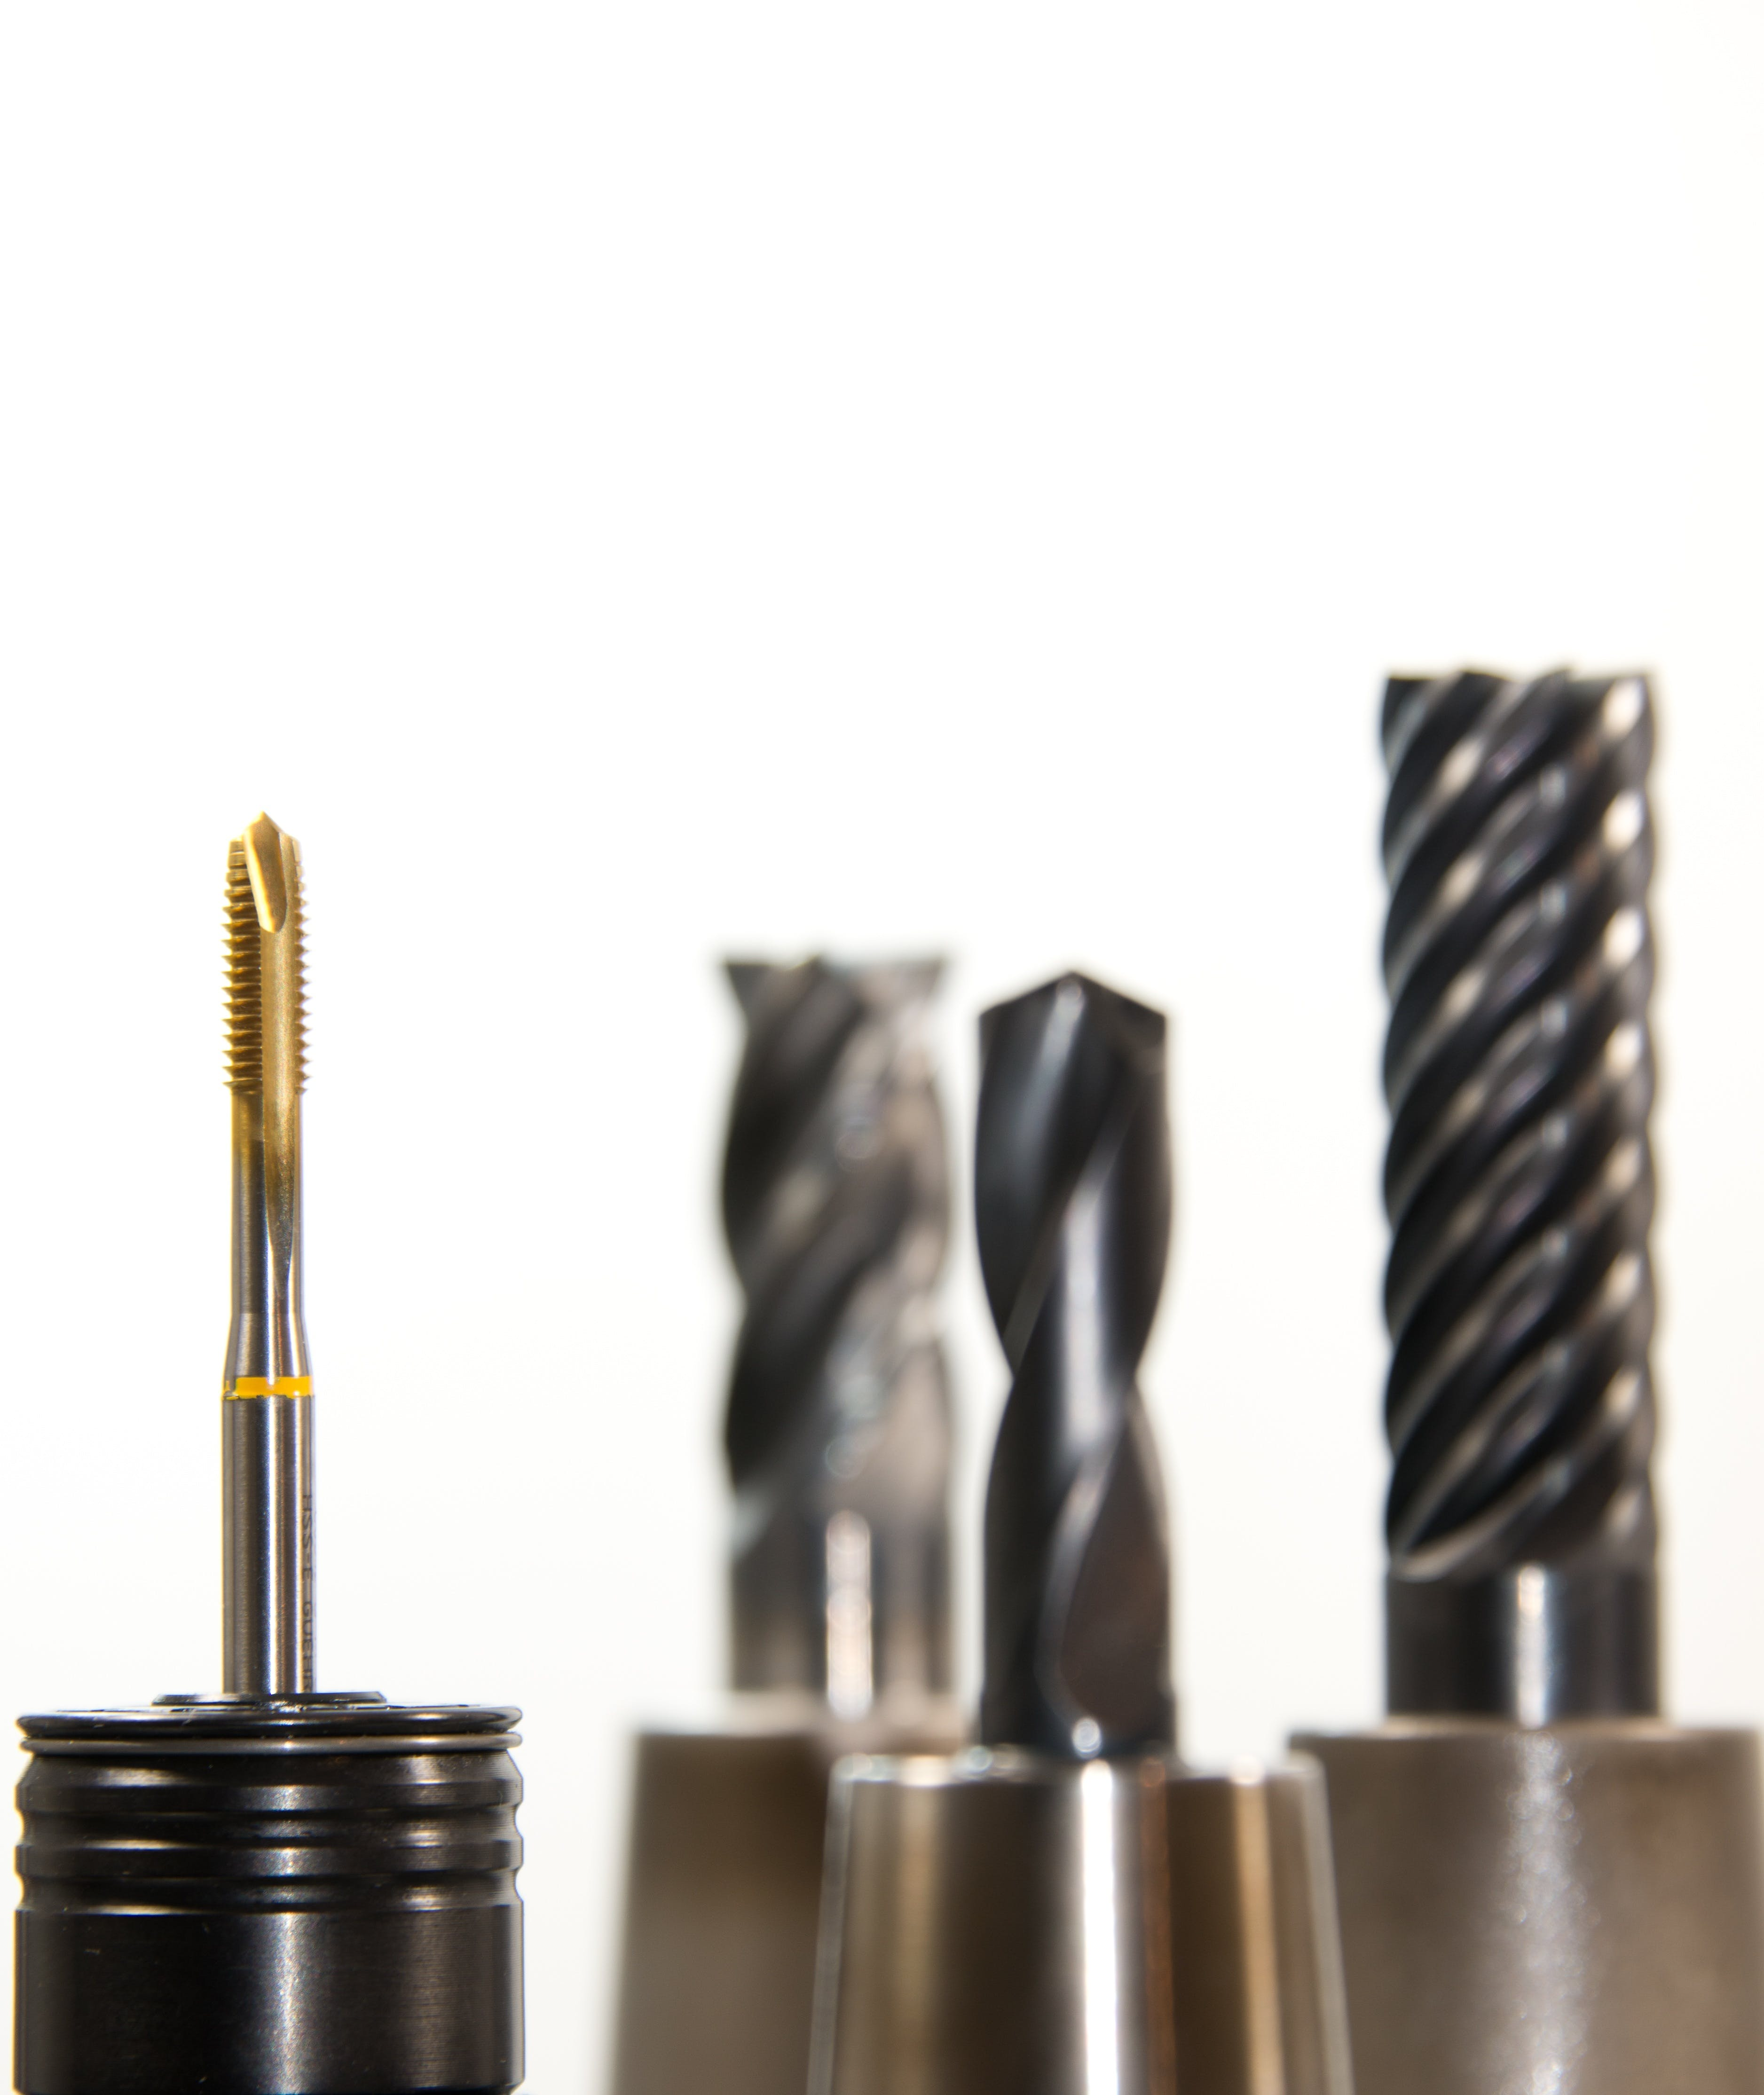 Selective Photo on Gold and Silver Drill Bit